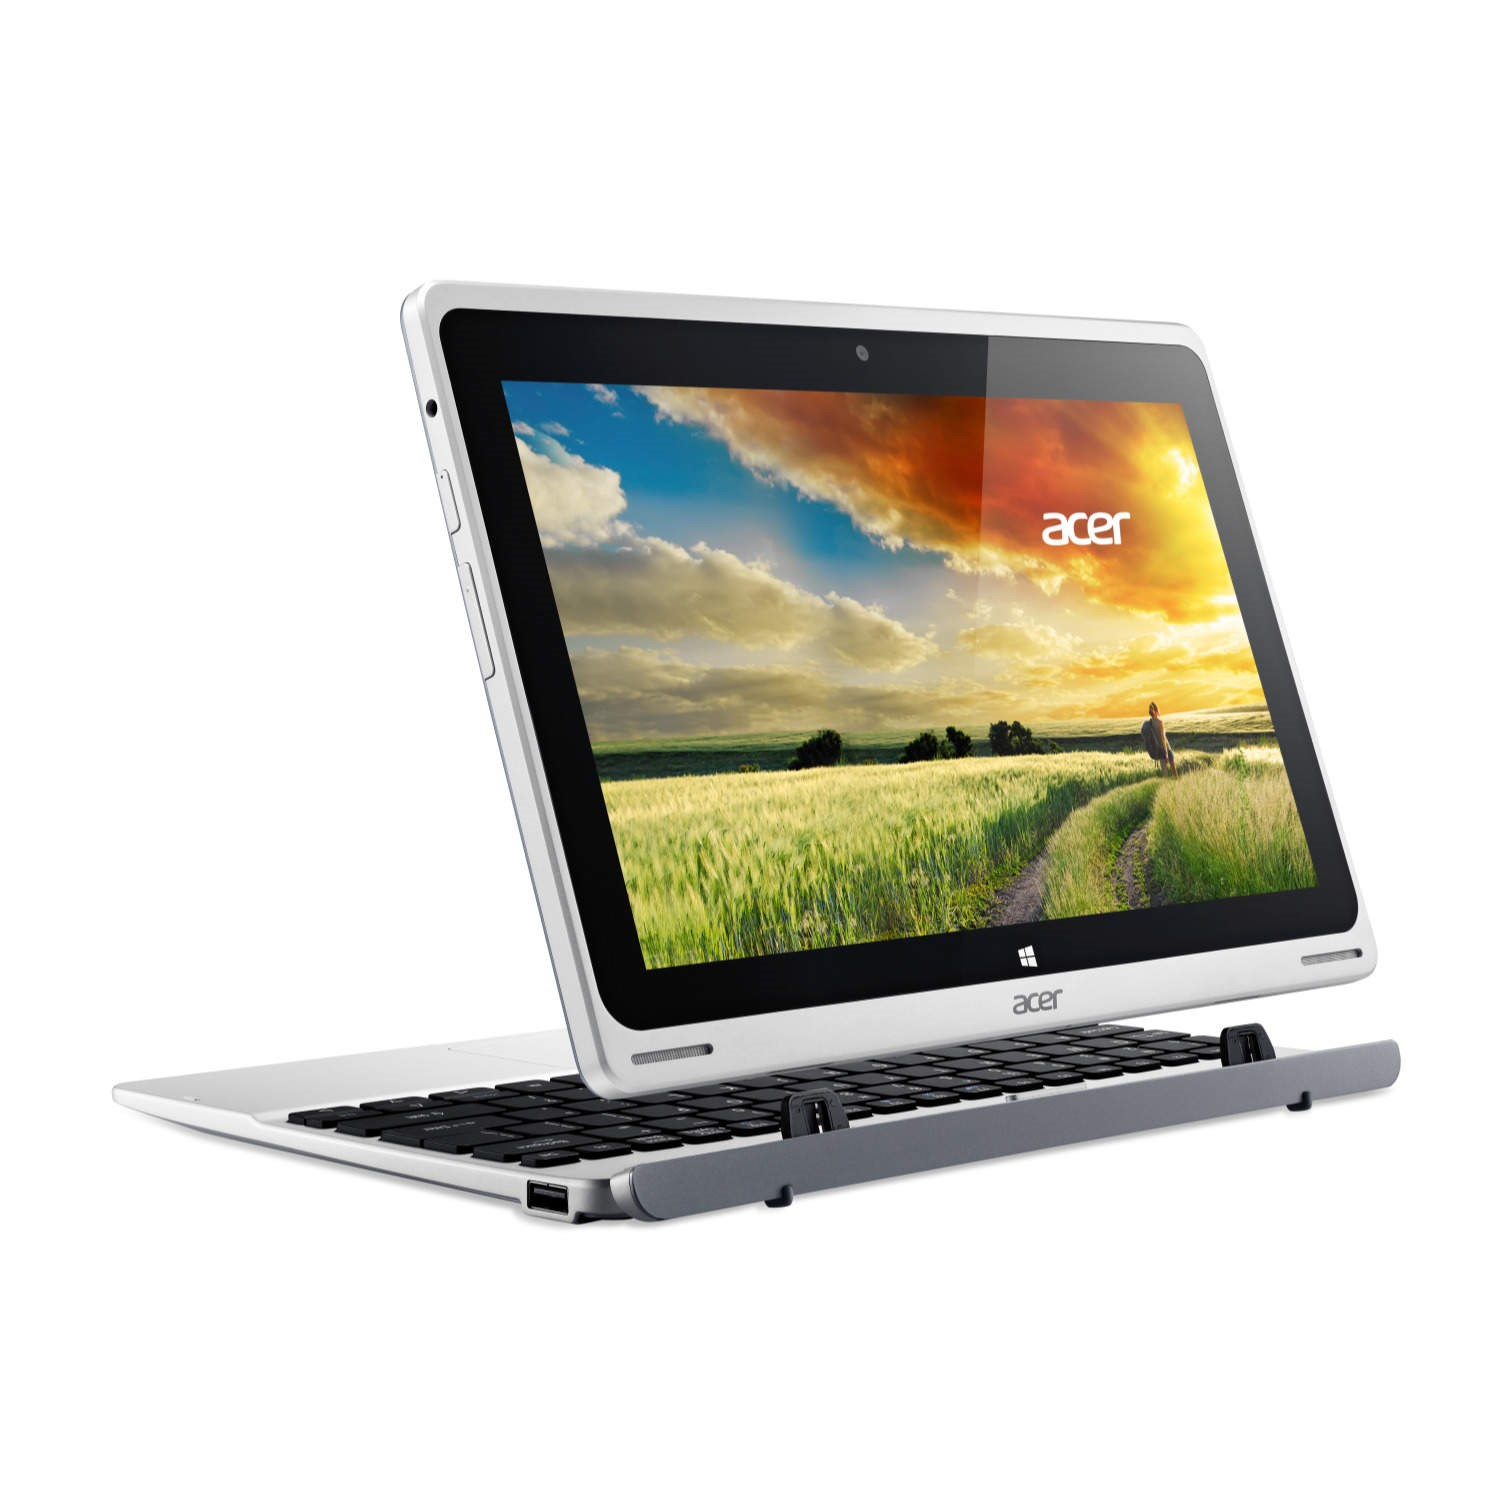 ACER ASPIRE SWITCH 11 SW5-171 LAPTOP WINDOWS 8 DRIVER DOWNLOAD